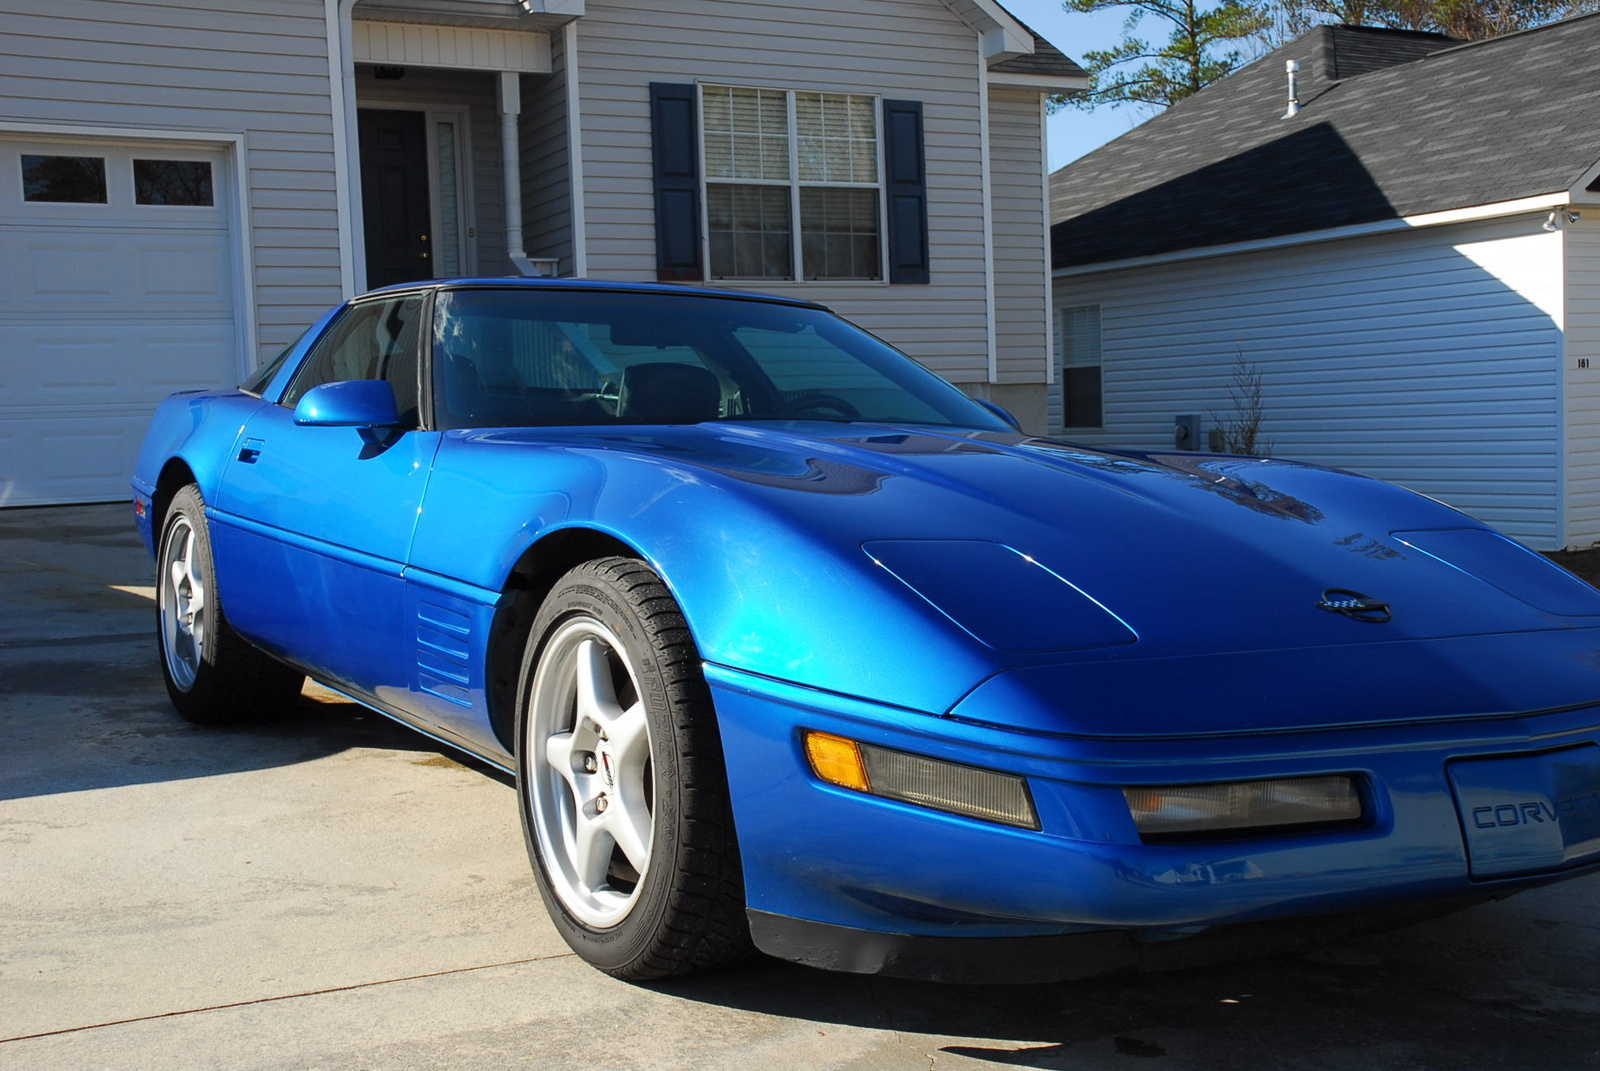 Picture of 1991 chevrolet corvette coupe exterior gallery_worthy